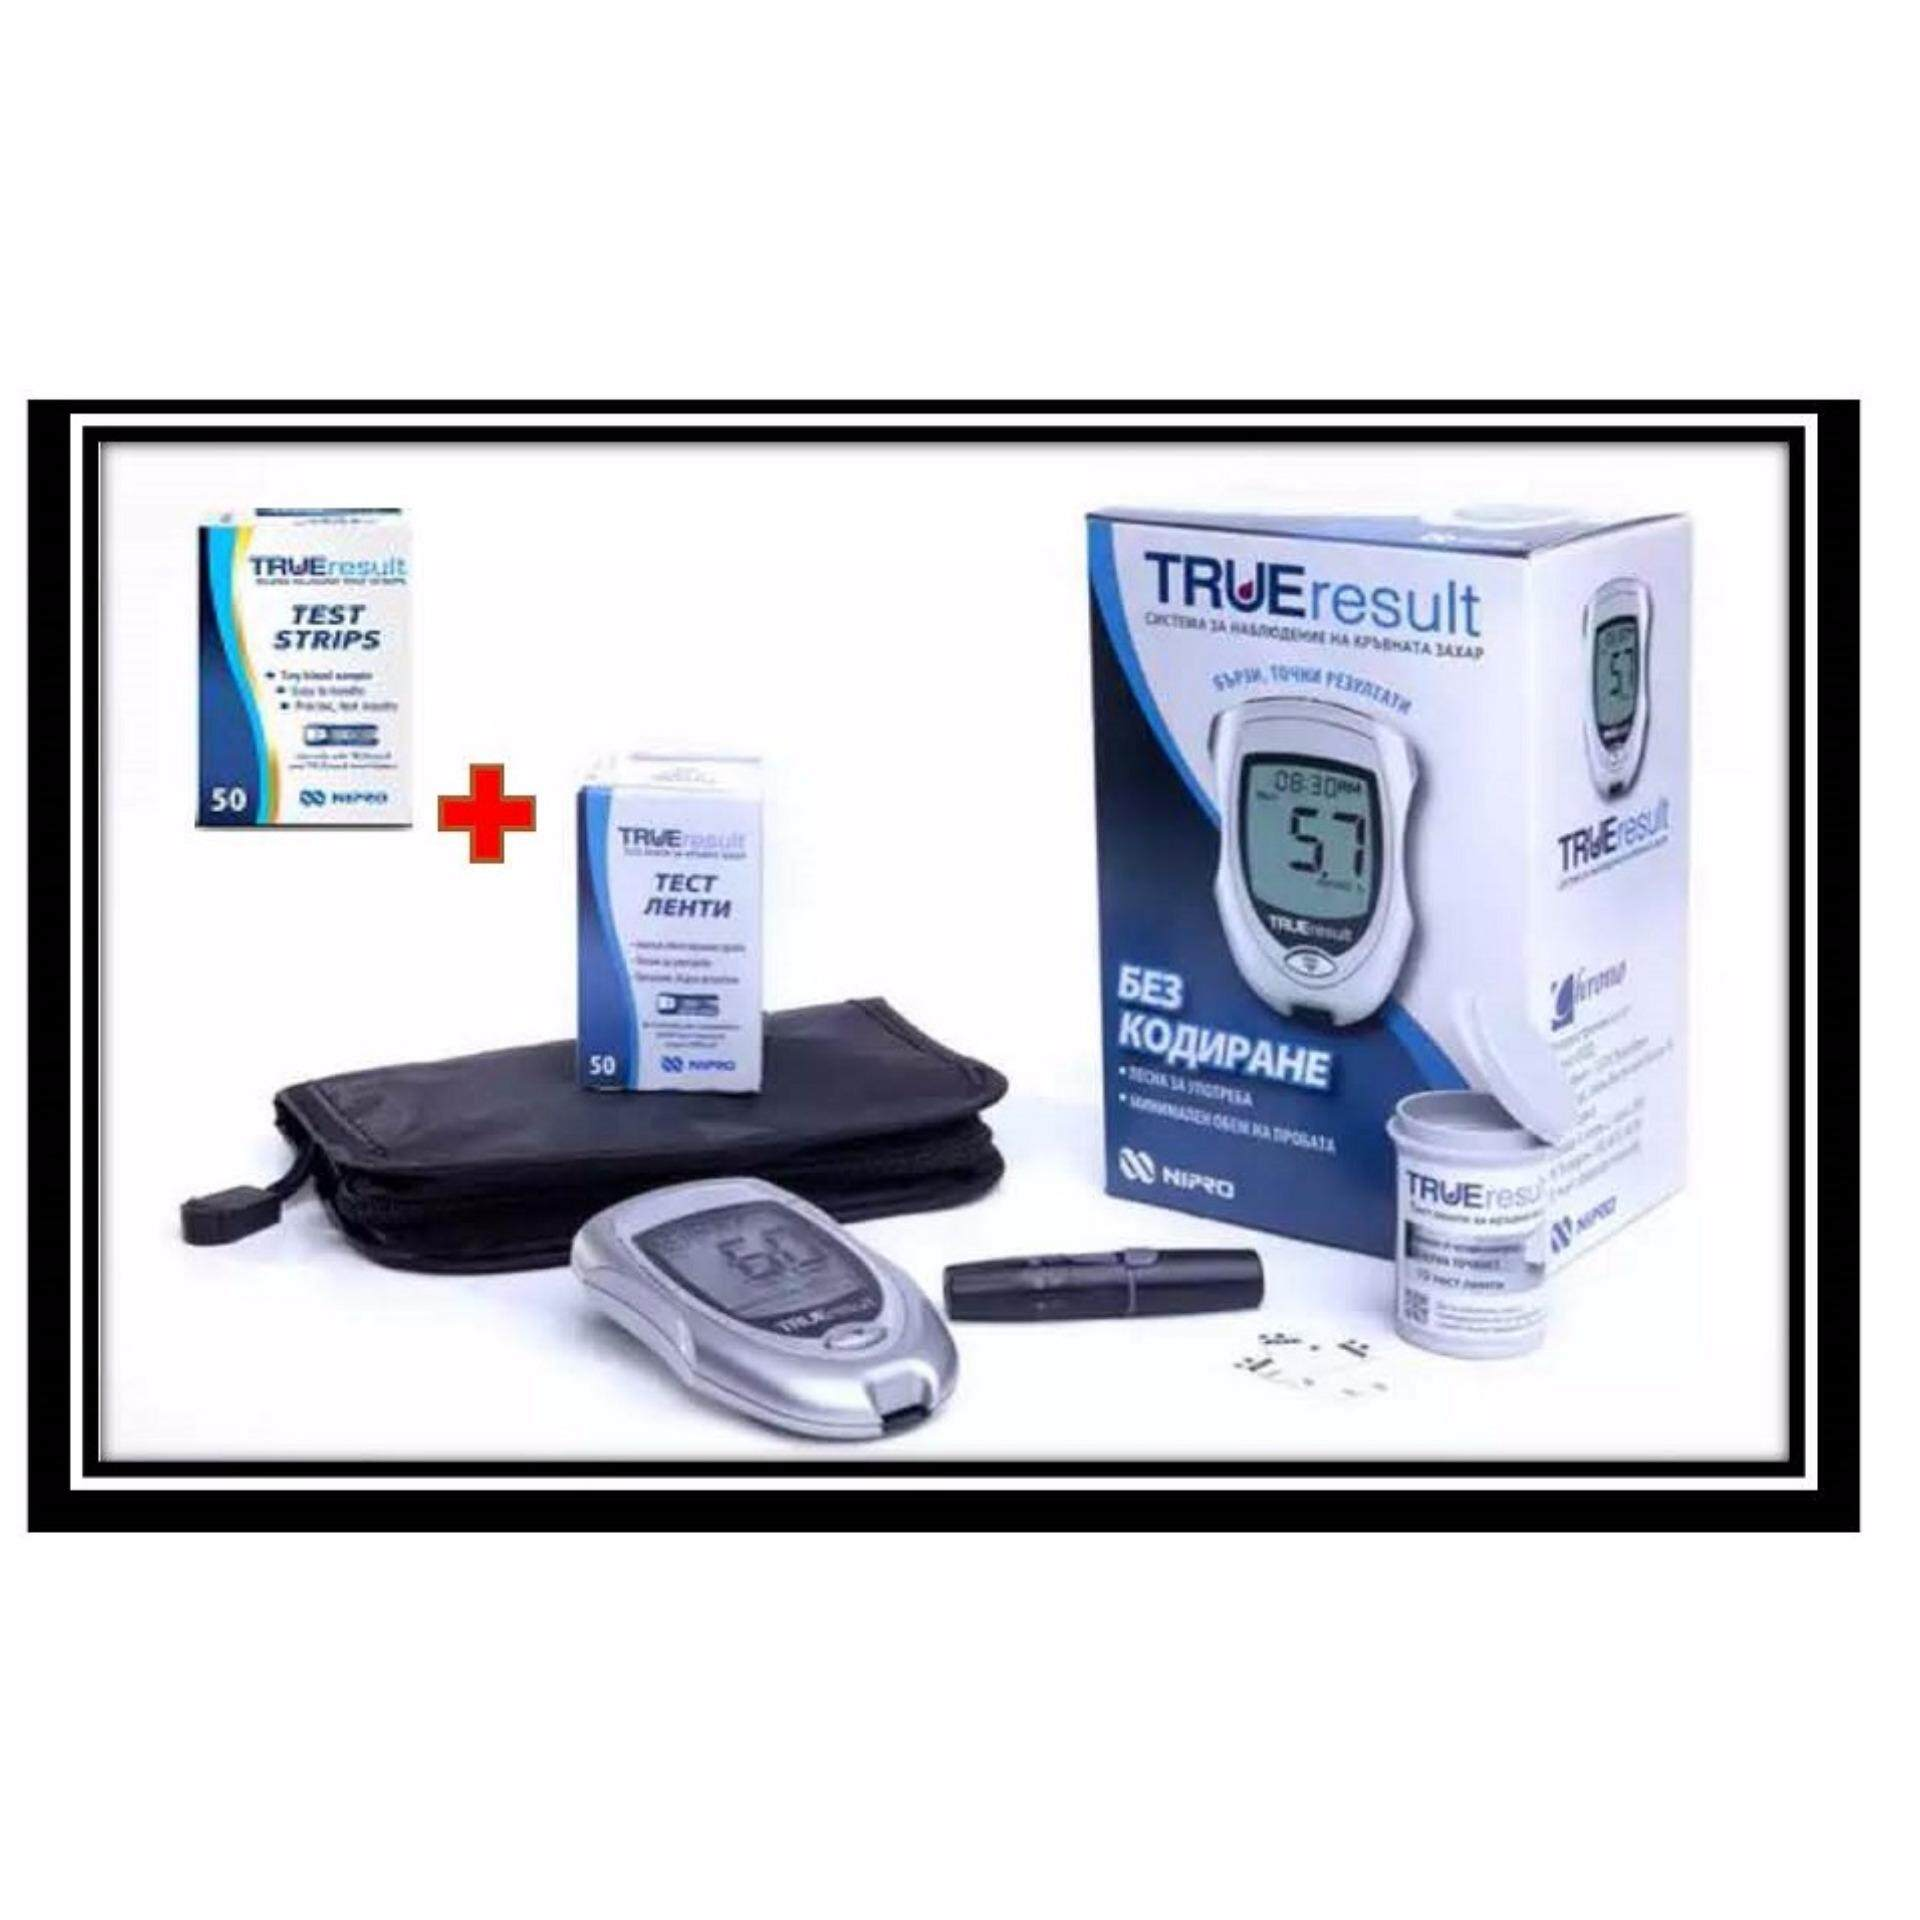 Nipro True Result (Lifetime warranty) Blood Glucose Meter Monitor Glucometer With 100 strips